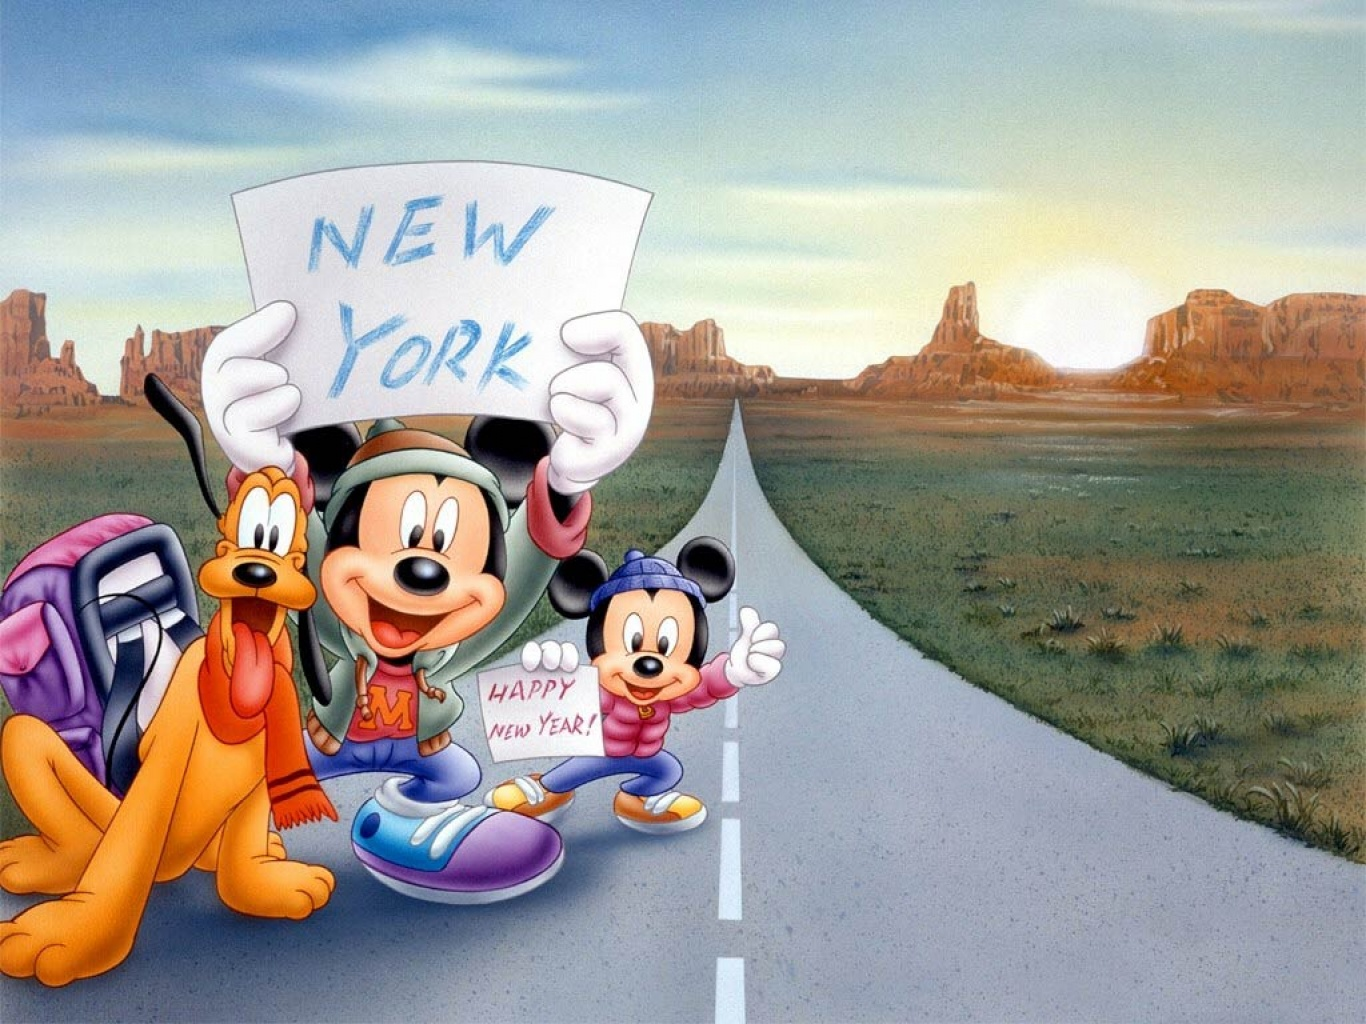 http://1.bp.blogspot.com/-3Tbkc8kbB9s/TjDg1Xzi3jI/AAAAAAAAAE8/xusA6XF-X5A/s1600/Wallpaper+free+download+Mickey+Mouse+and+Pluto+asking.jpg